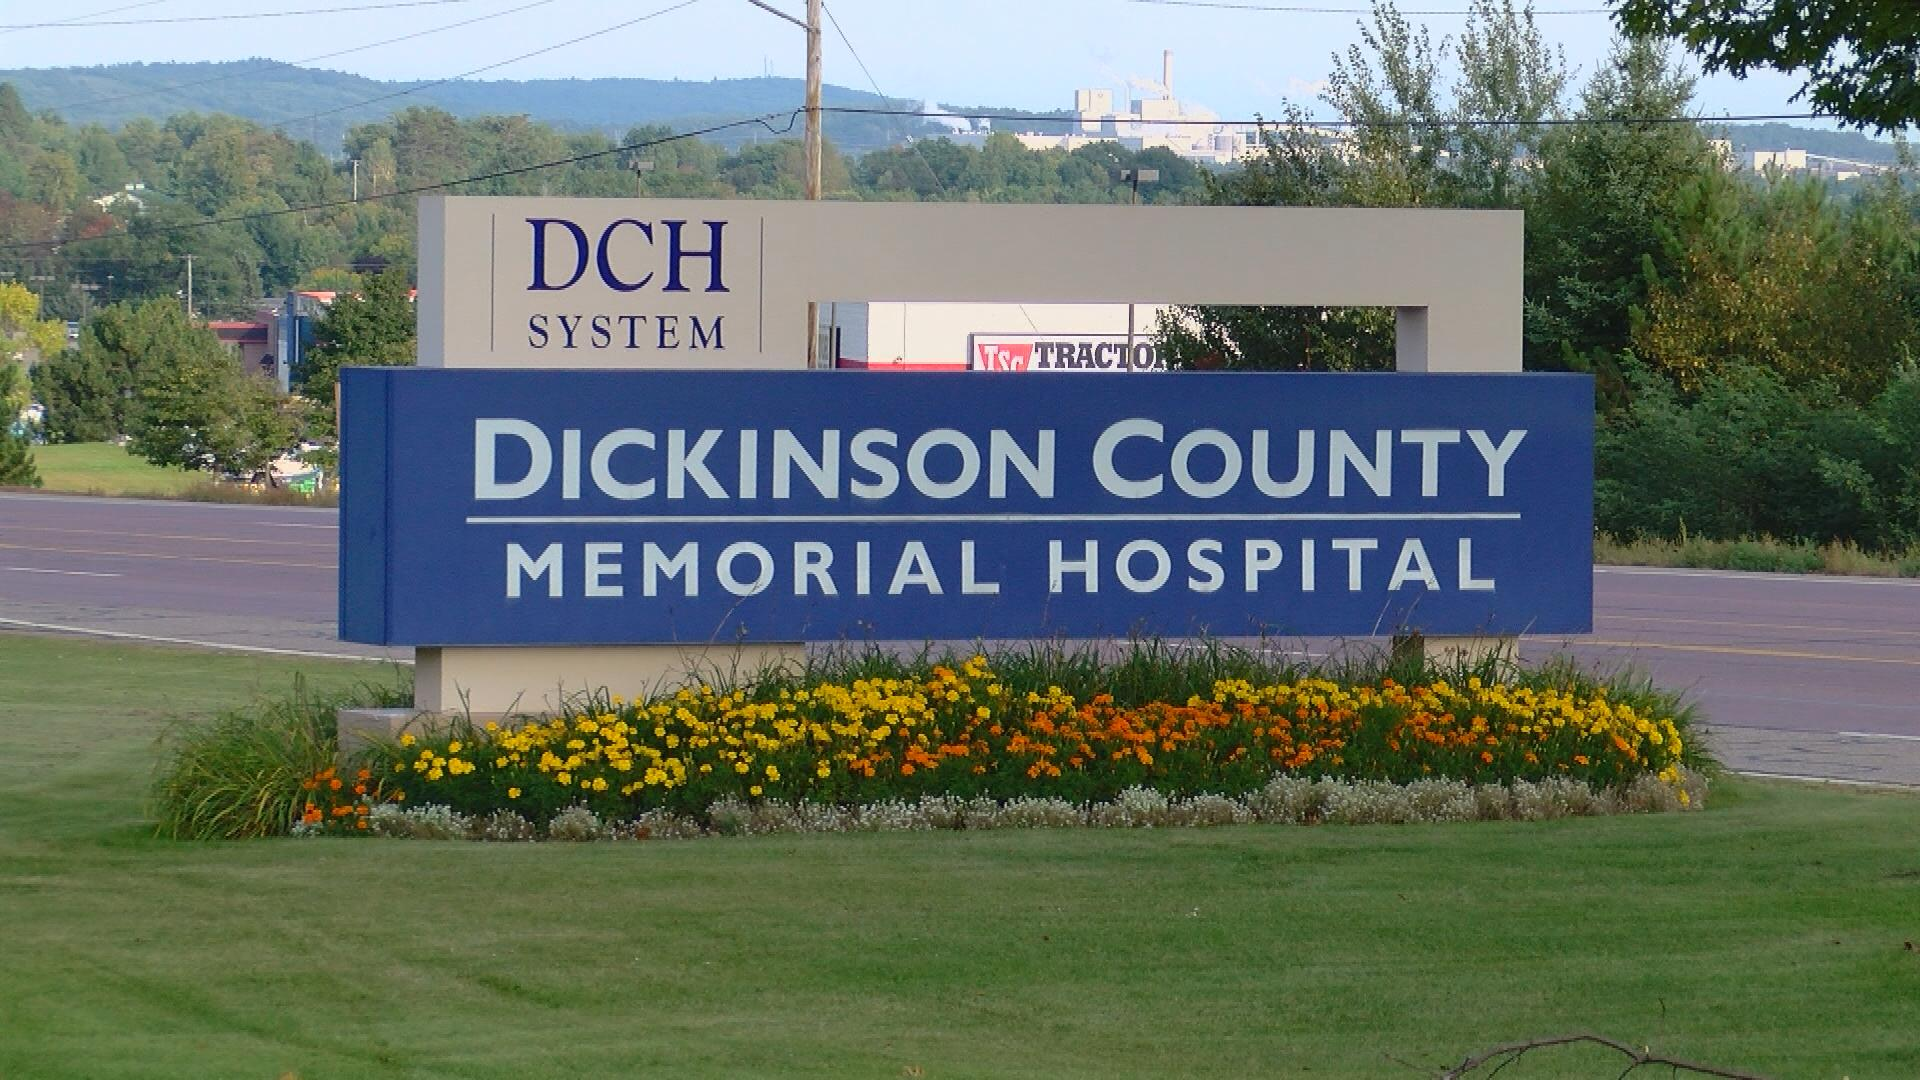 Dickinson county memorial hospital